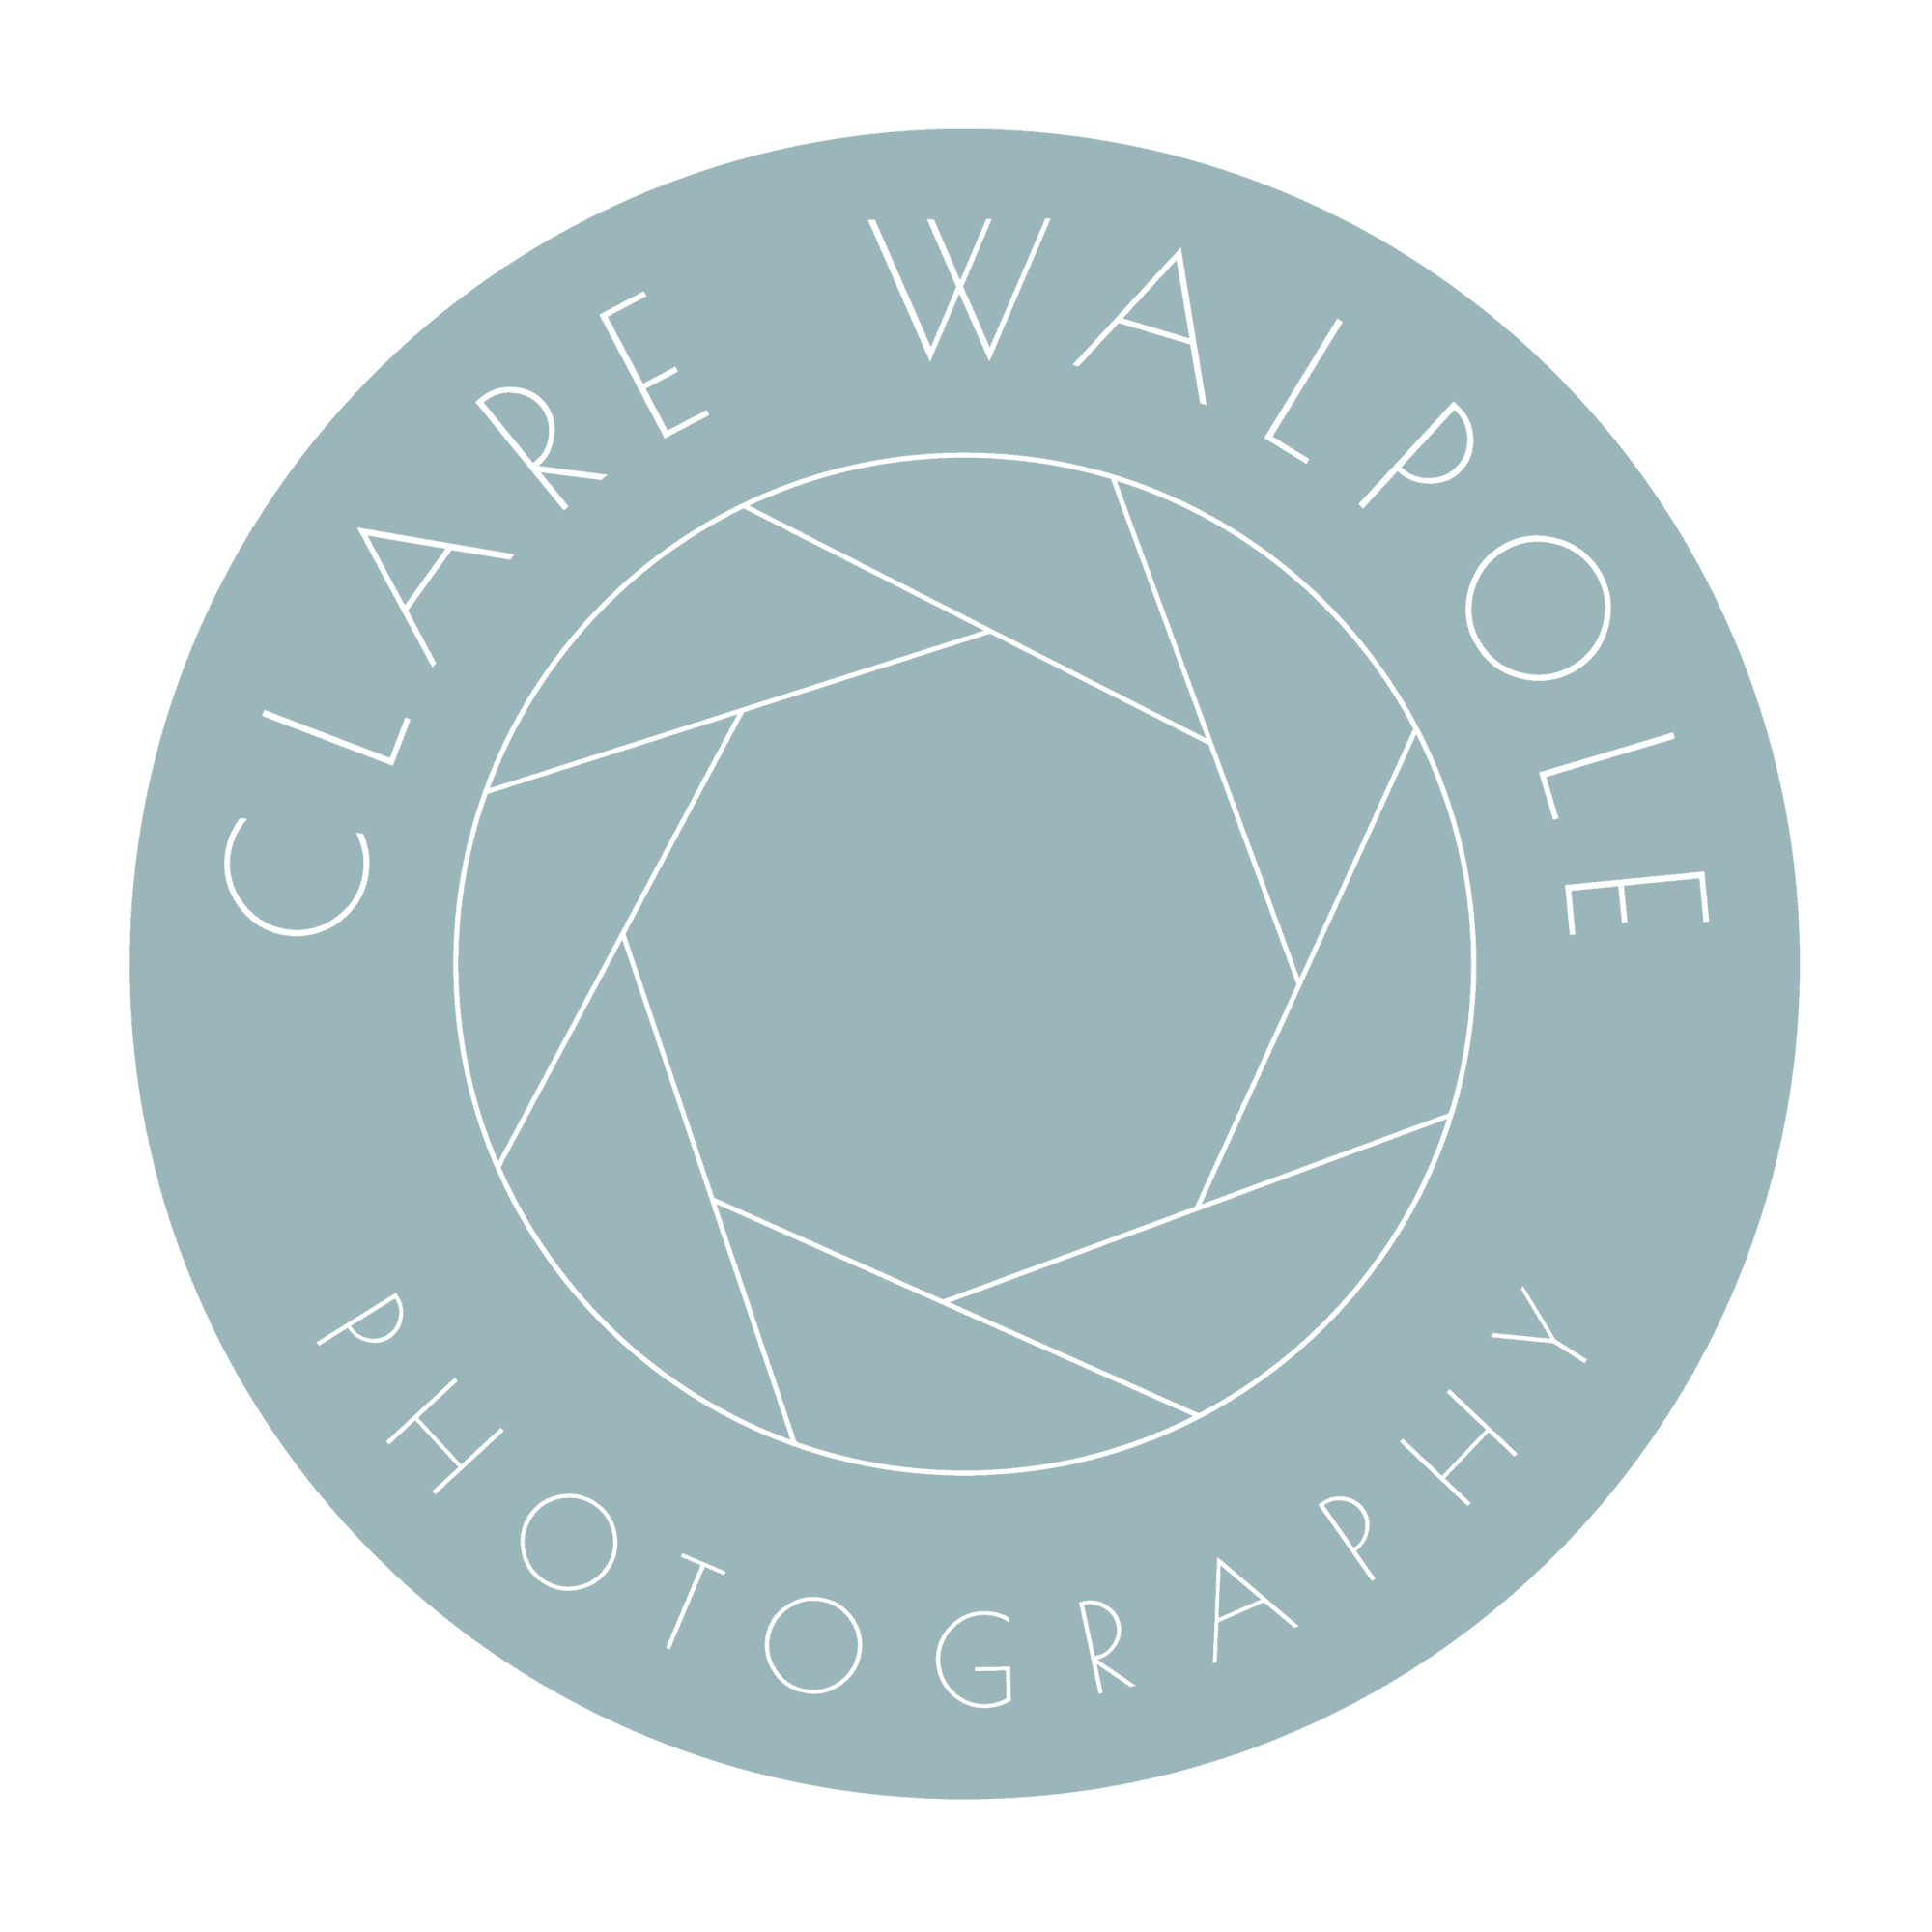 Clare Walpole Photography